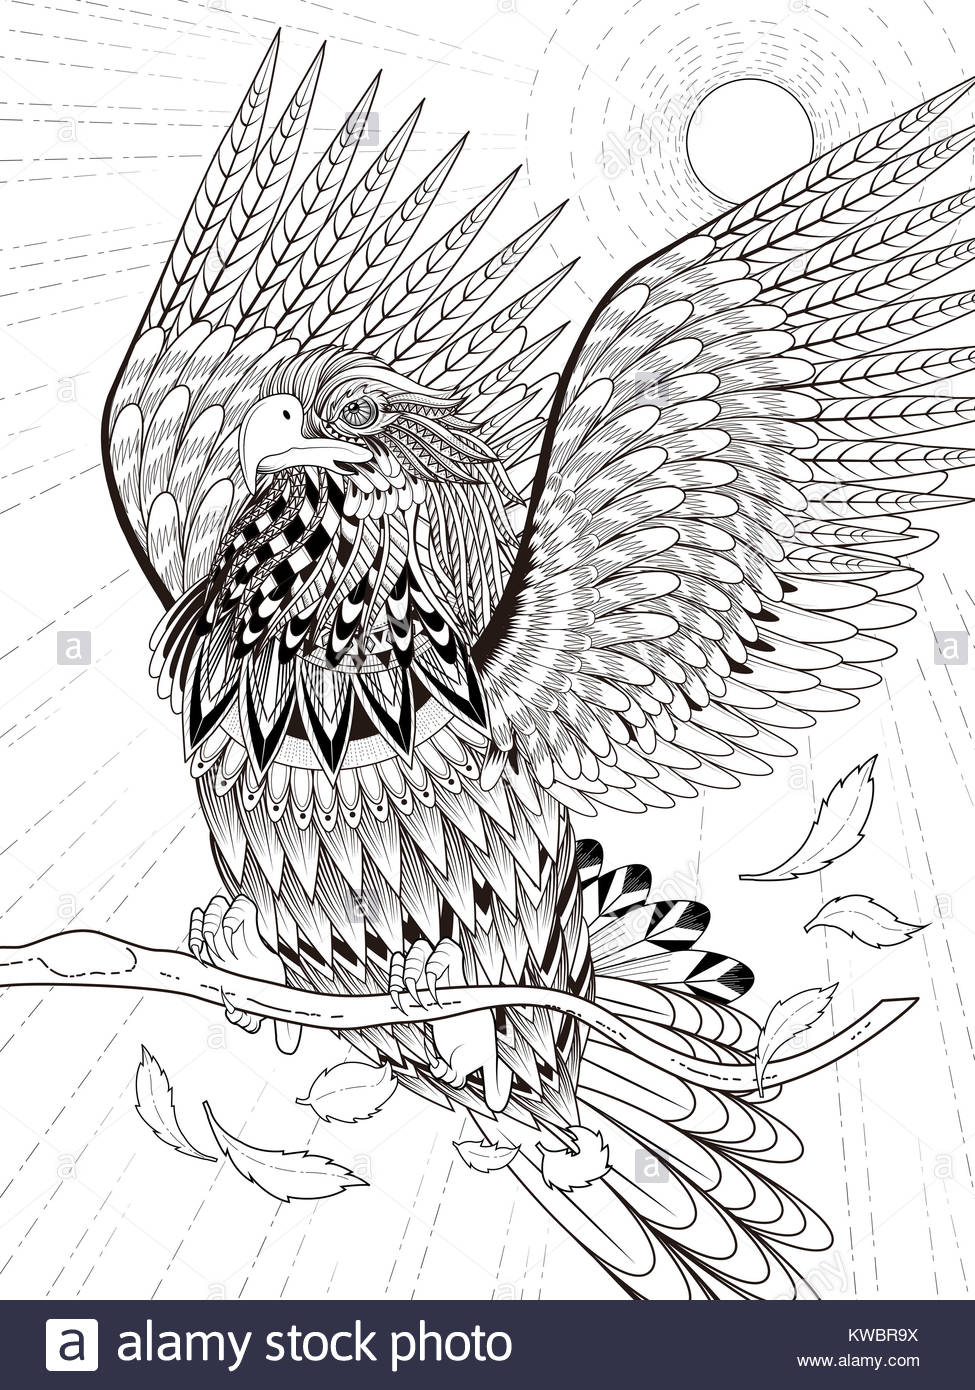 imposing flying eagle coloring page in exquisite line Stock Photo ...